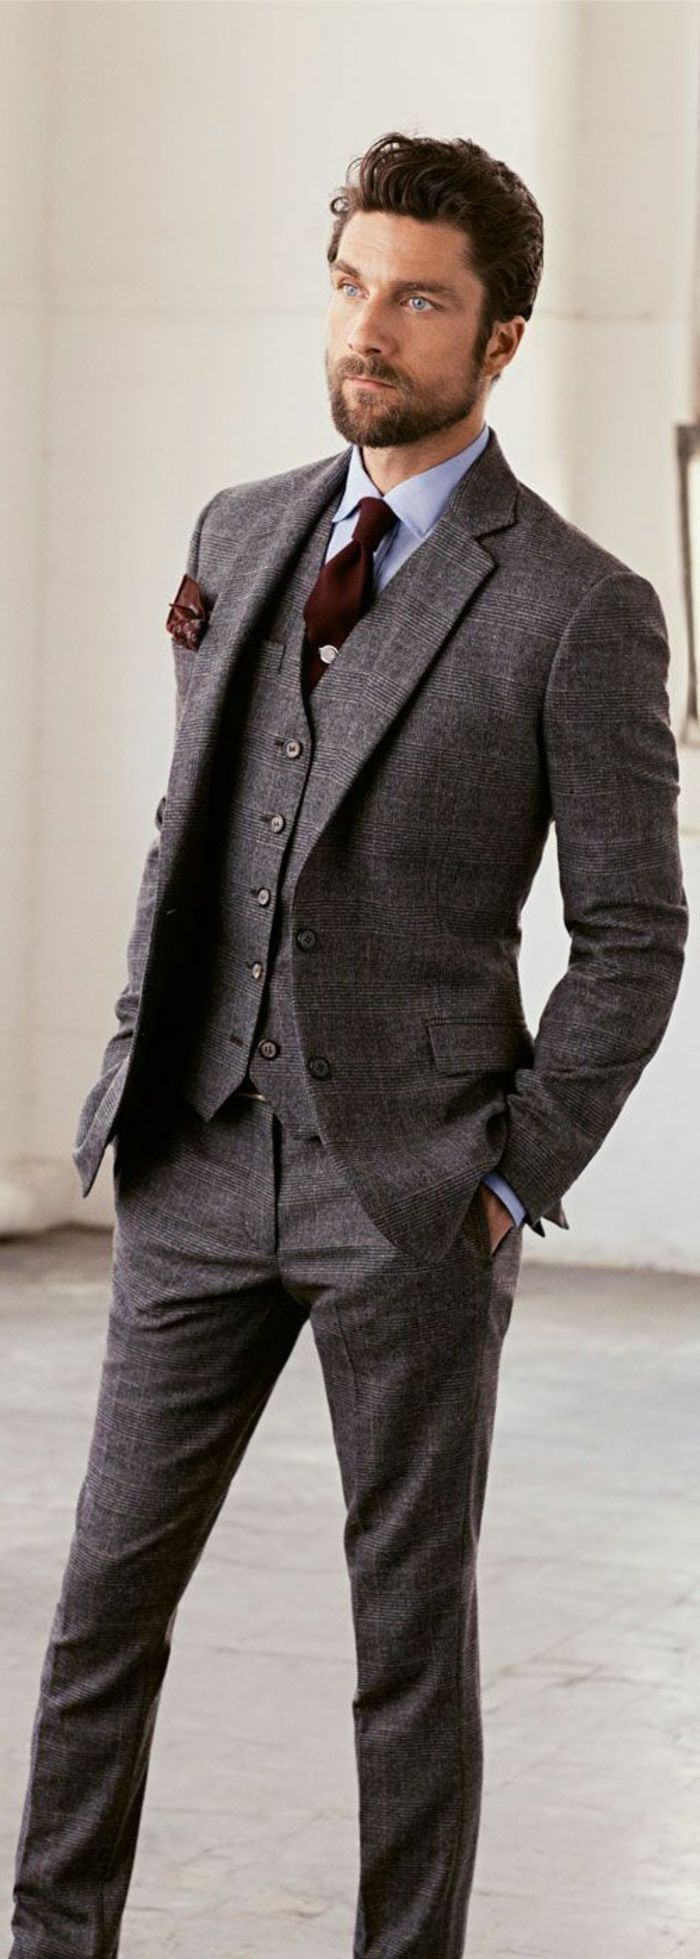 Le costume gris anthracite homme en 40 photos!